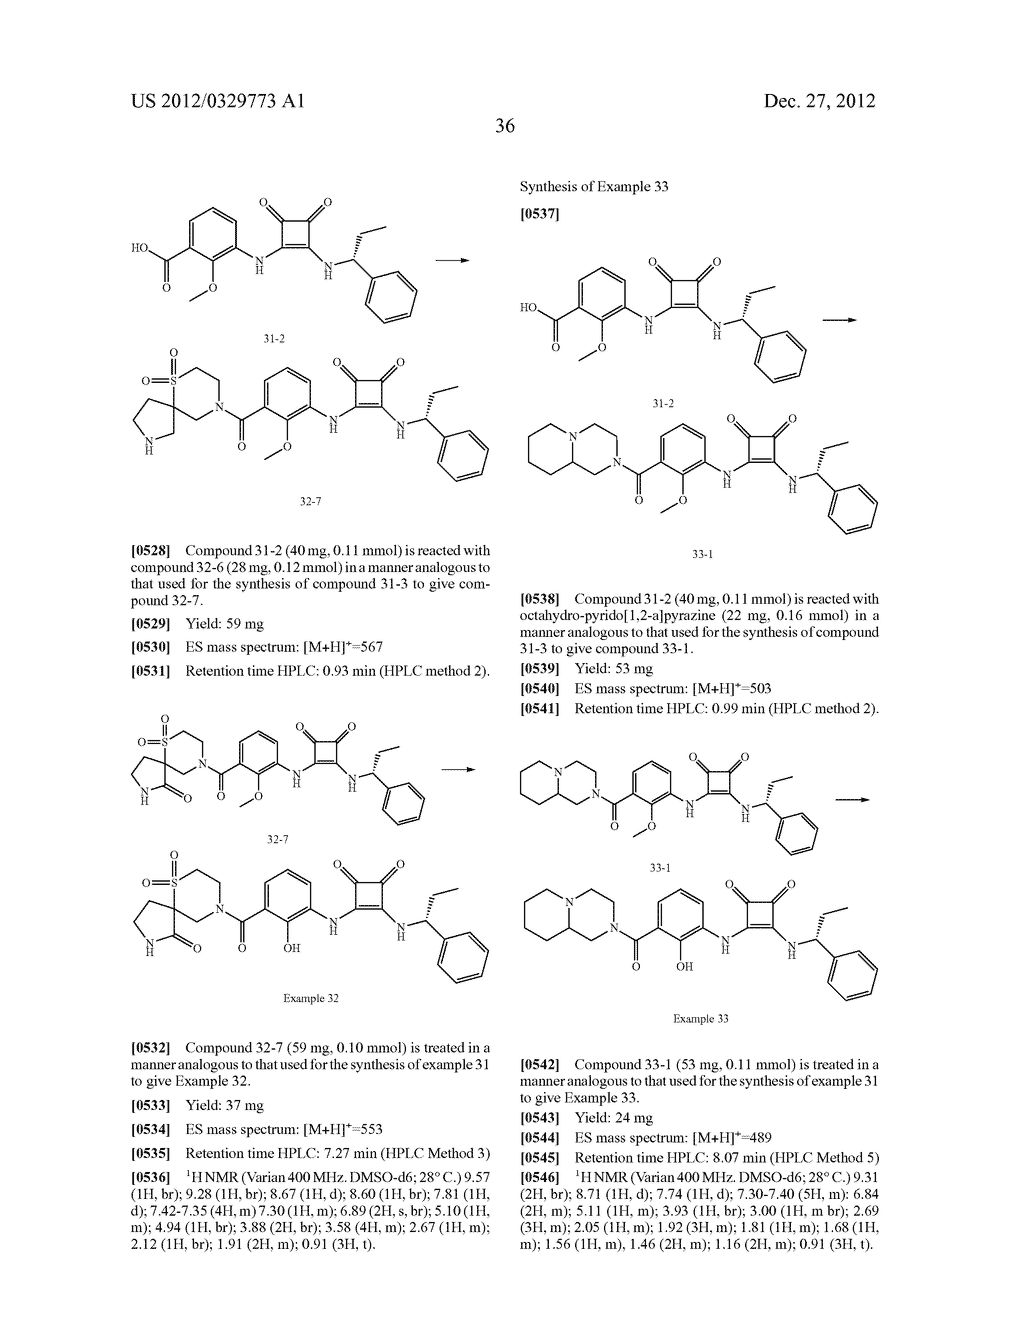 BICYCLIC RING SYSTEM SUBSTITUTED AMIDE FUNCTIONALISED PHENOLS AS     MEDICAMENTS - diagram, schematic, and image 37